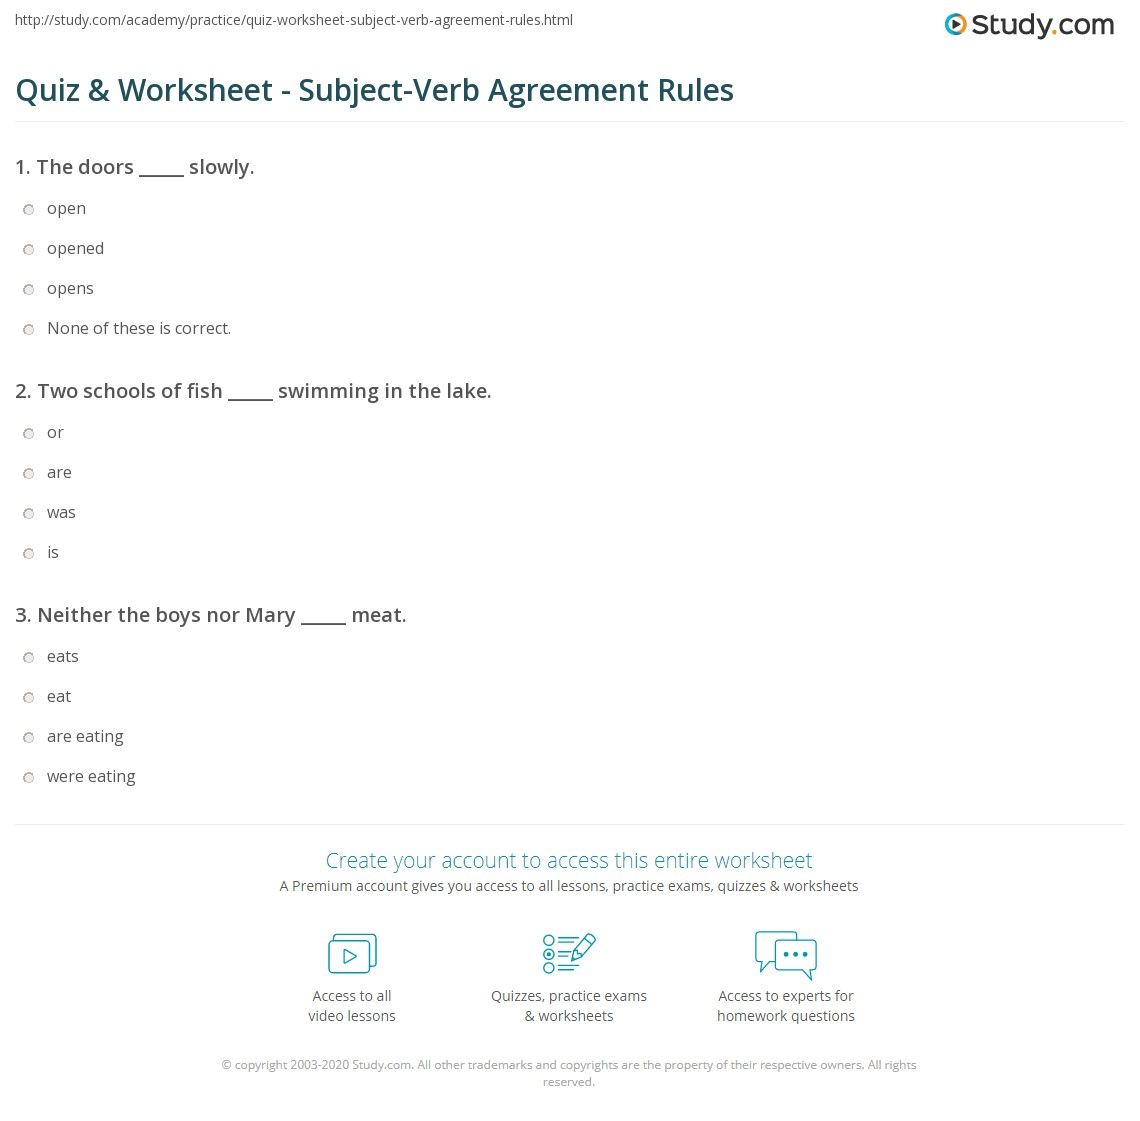 picture about Subject Verb Agreement Printable Worksheets known as Quiz Worksheet - Issue-Verb Arrangement Suggestions